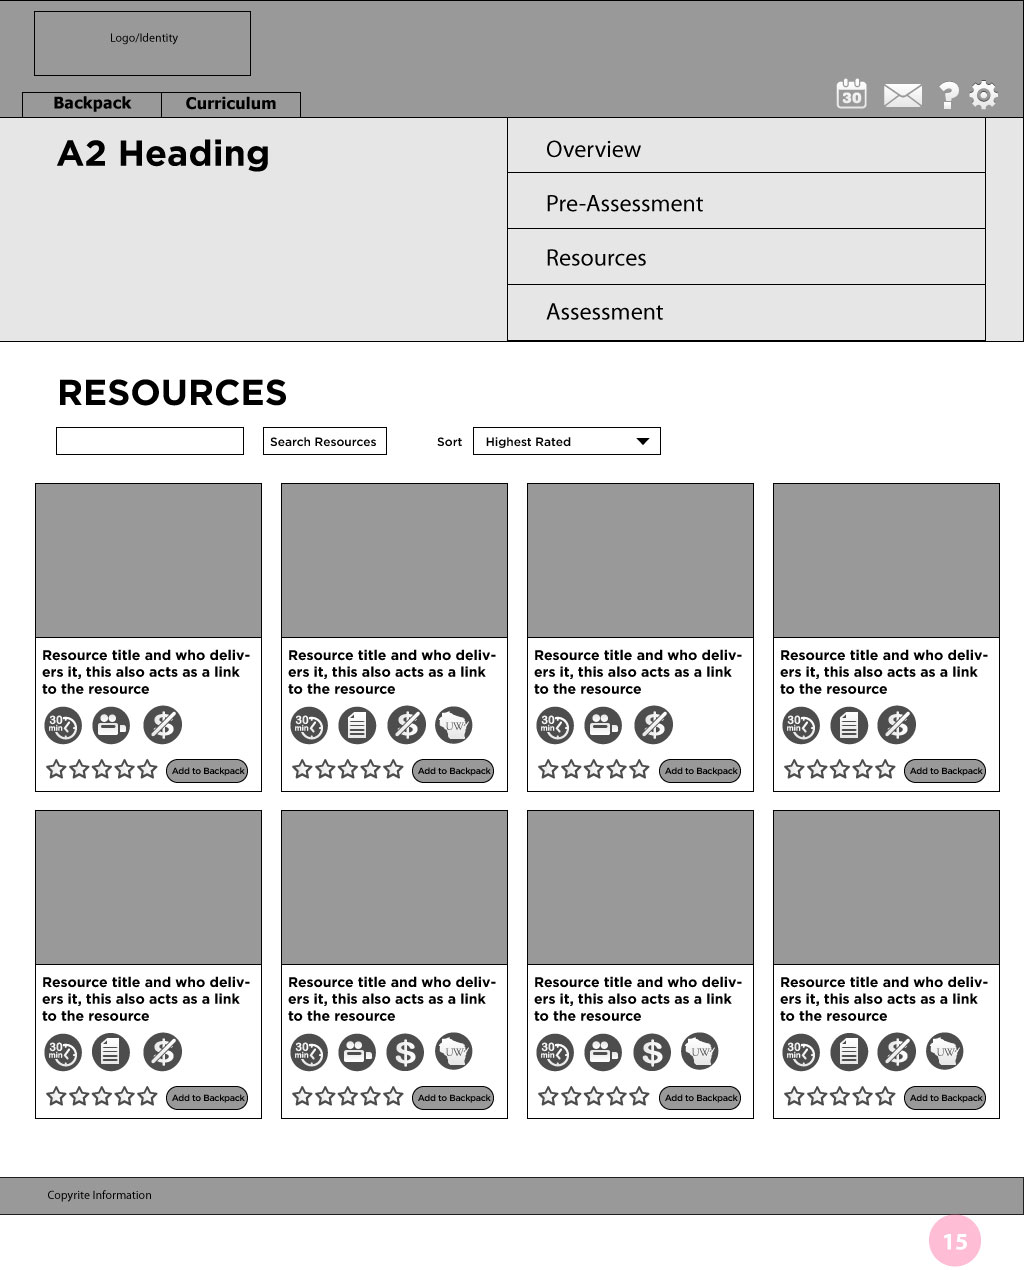 15_Wireframe_Resources